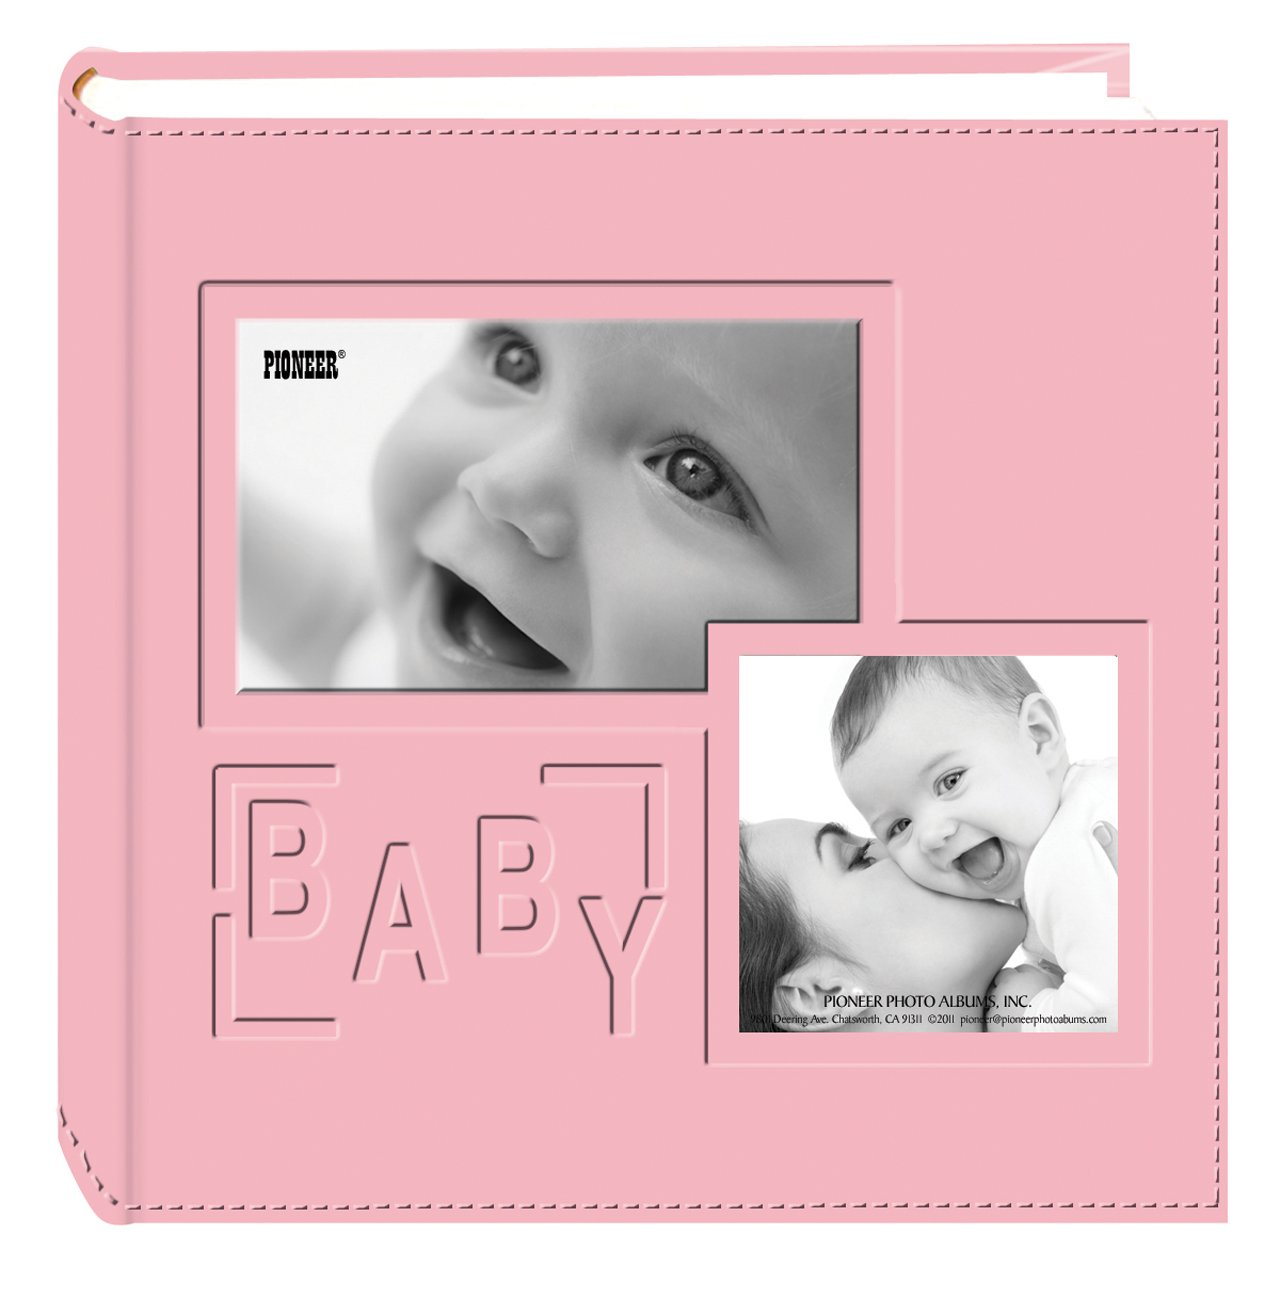 Pioneer Photo Albums 200-Pocket Embossed ''Baby'' Leatherette Frame Cover Album for 4 by 6-Inch Prints, Pink by Pioneer Photo Albums